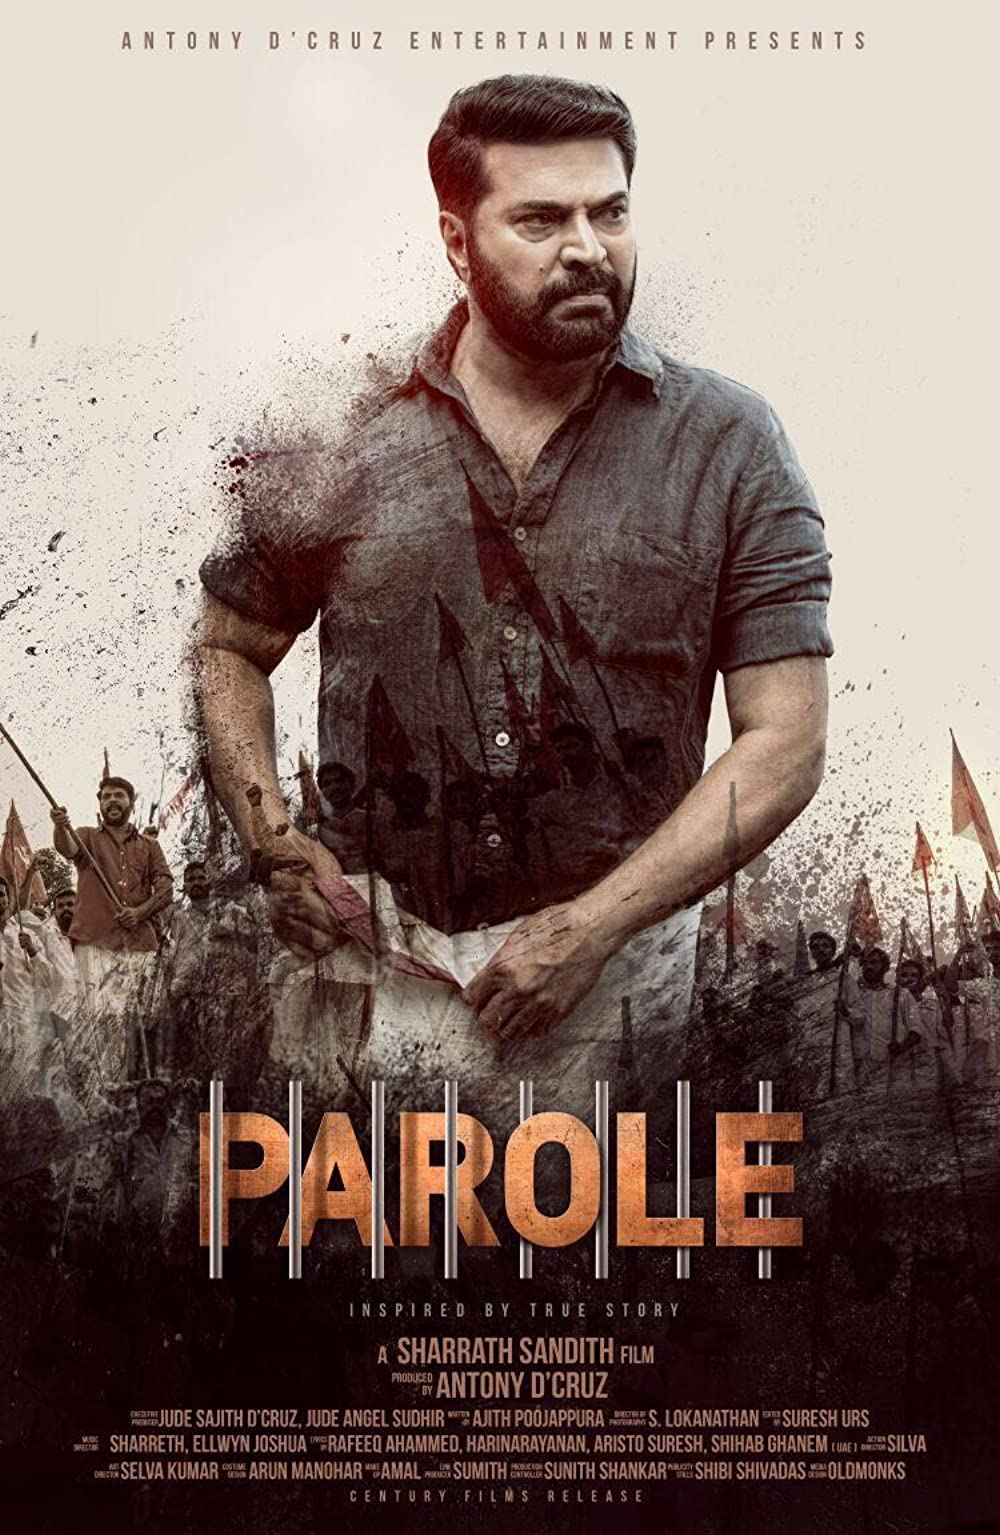 Parol (Parole) 2021 Hindi Dubbed 402MB HDRip Download